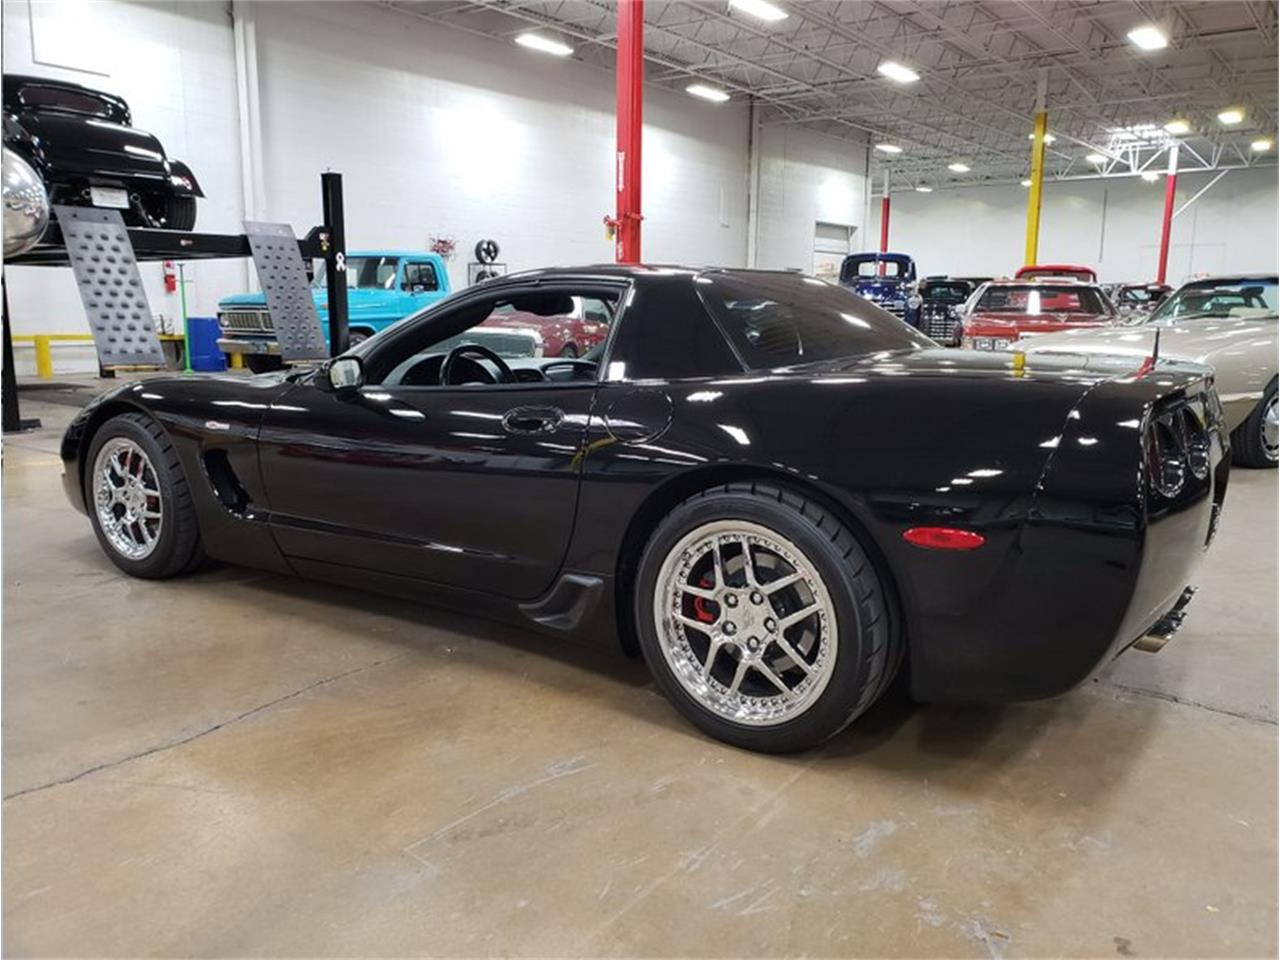 2003 Chevrolet Corvette (CC-1316373) for sale in Collierville, Tennessee